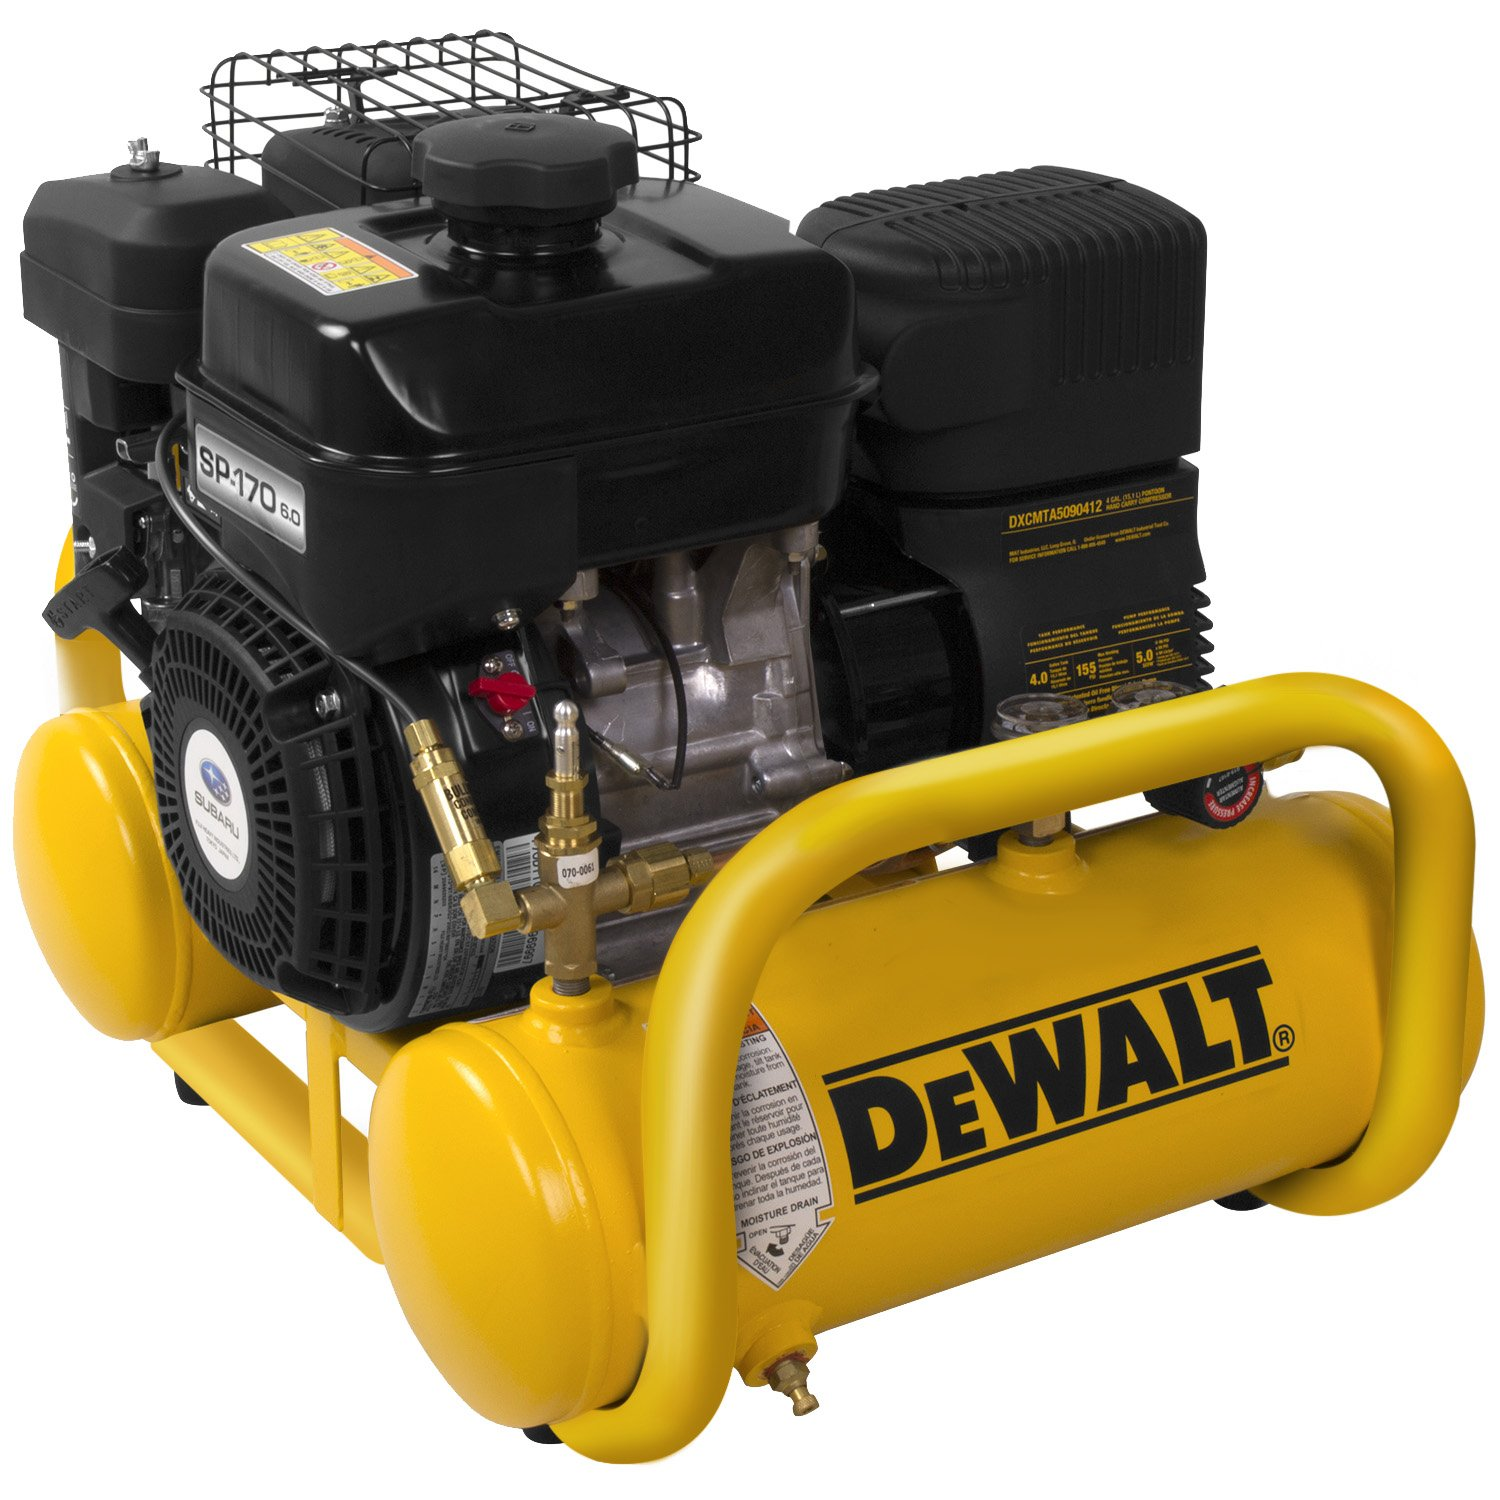 DeWalt Air Compressor Reviews